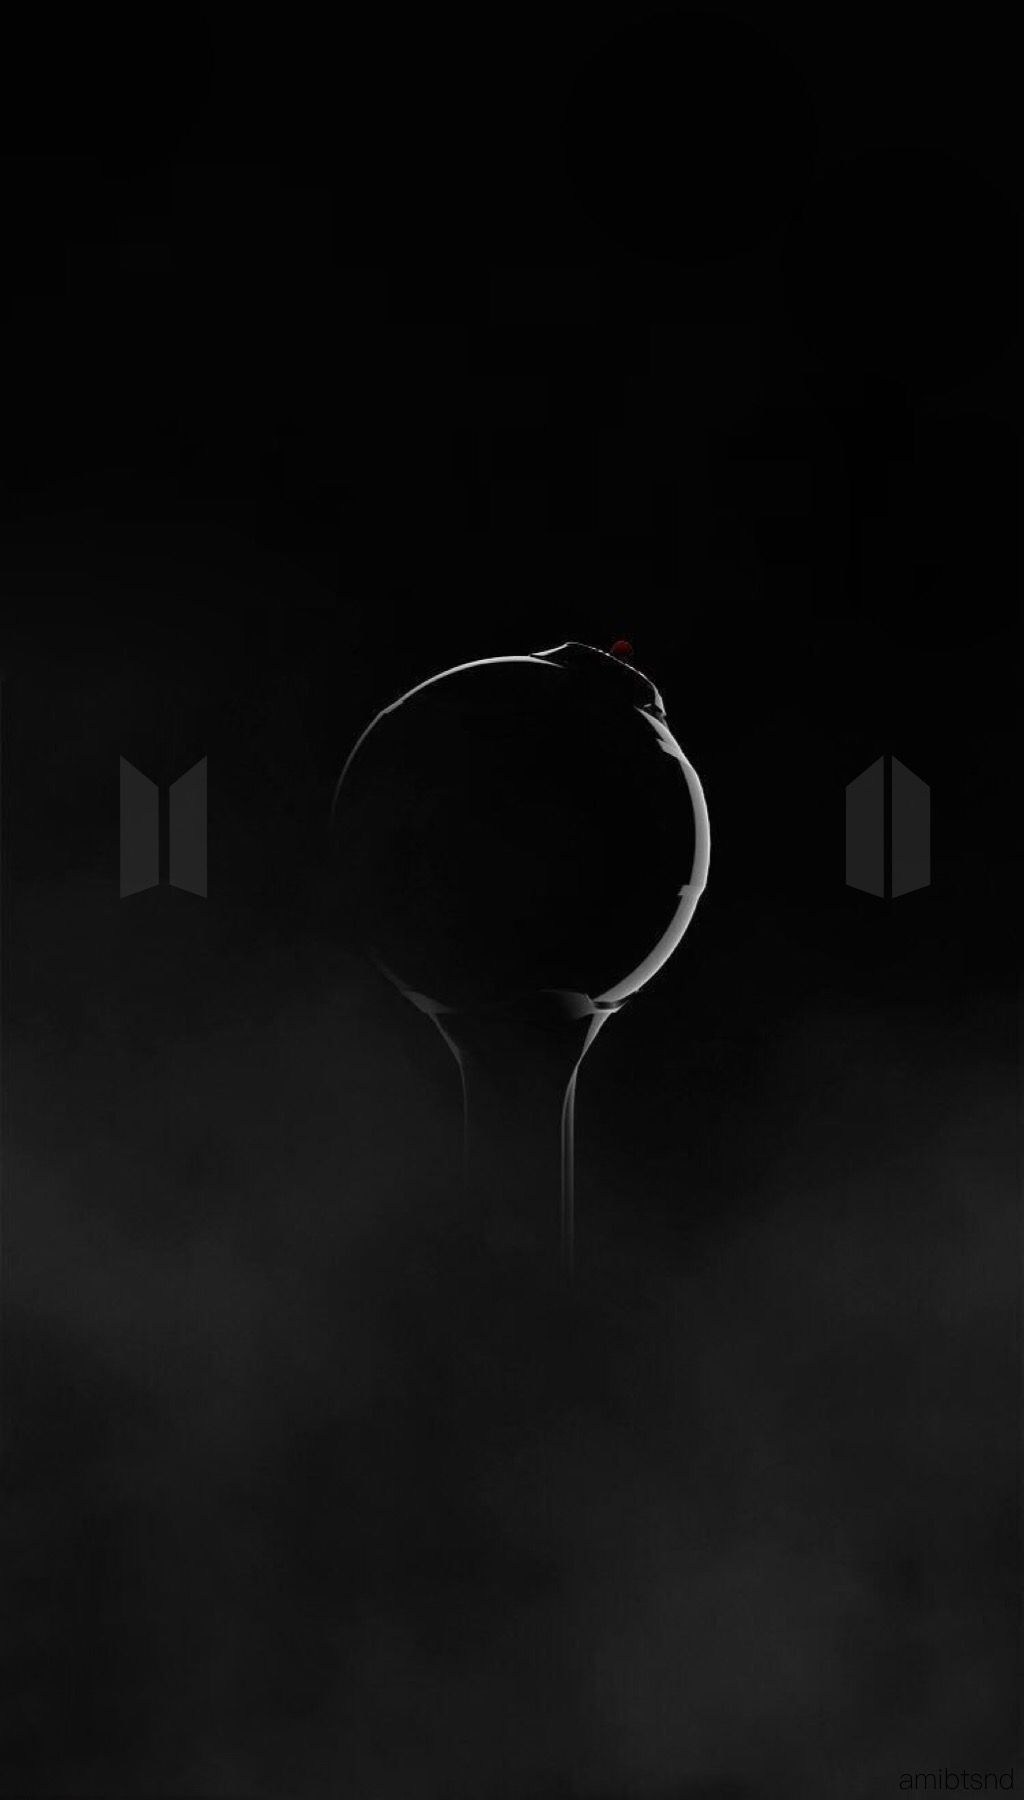 Bts Wallpaper Army Bomb Wallpapers And Backgrounds Pinterest